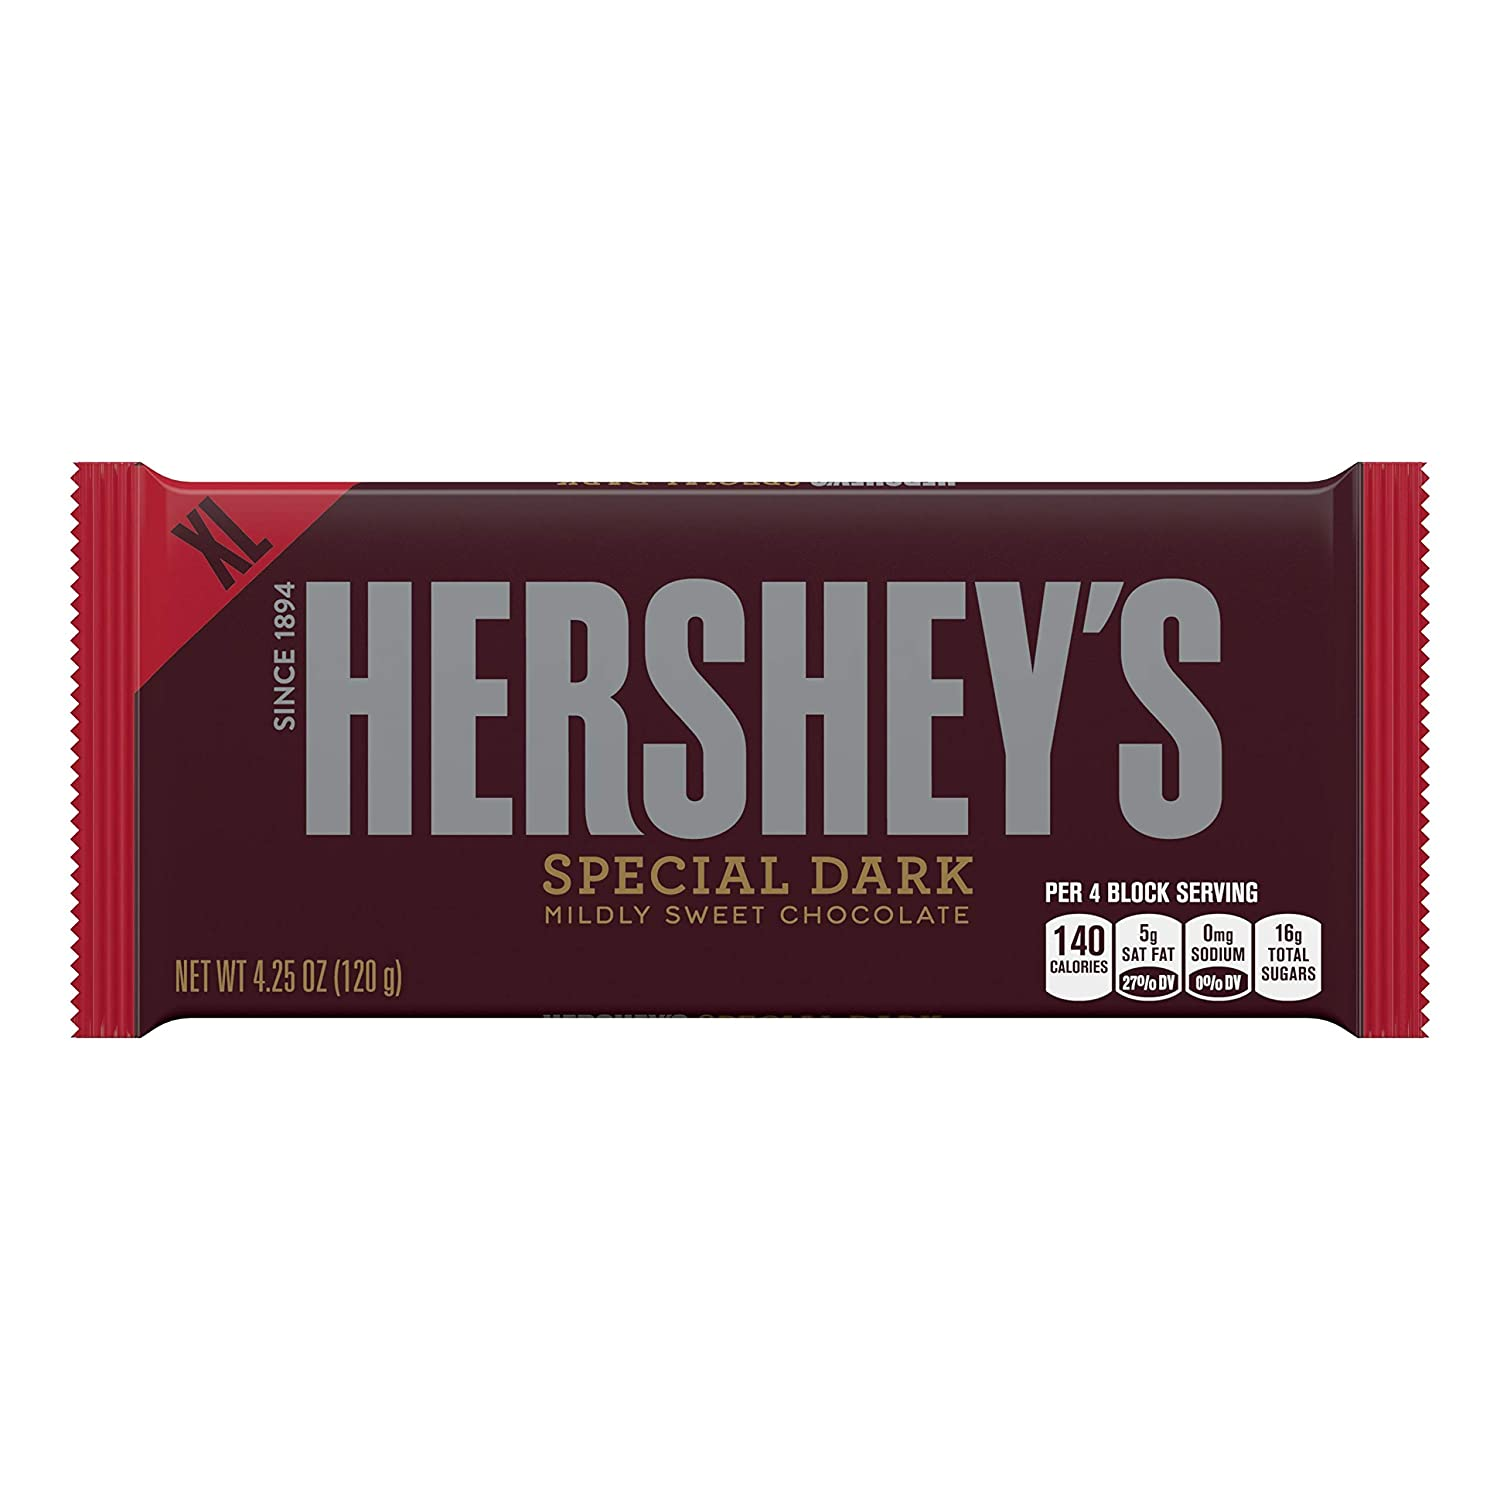 HERSHEY'S Special Dark New York Mall Mildly Sweet Candy Bombing free shipping Hallow Chocolate